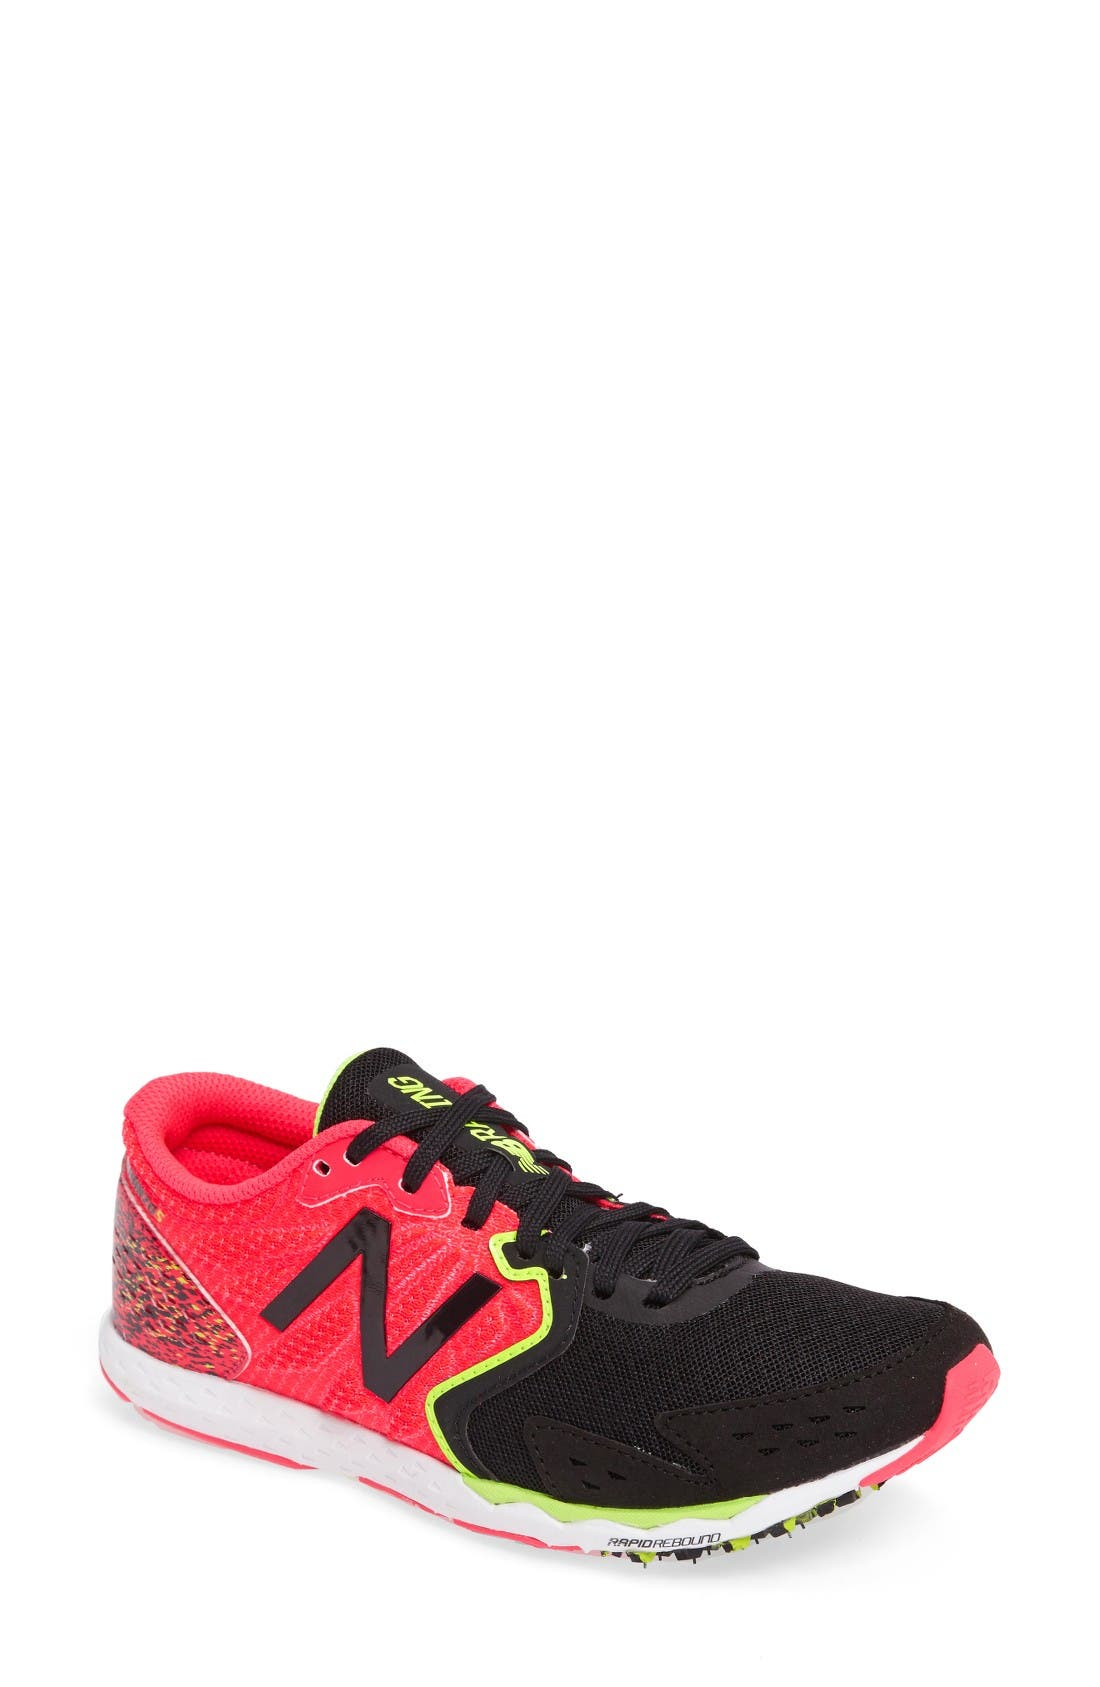 new balance shoes red and black. new balance hanzo s running shoe (women) shoes red and black